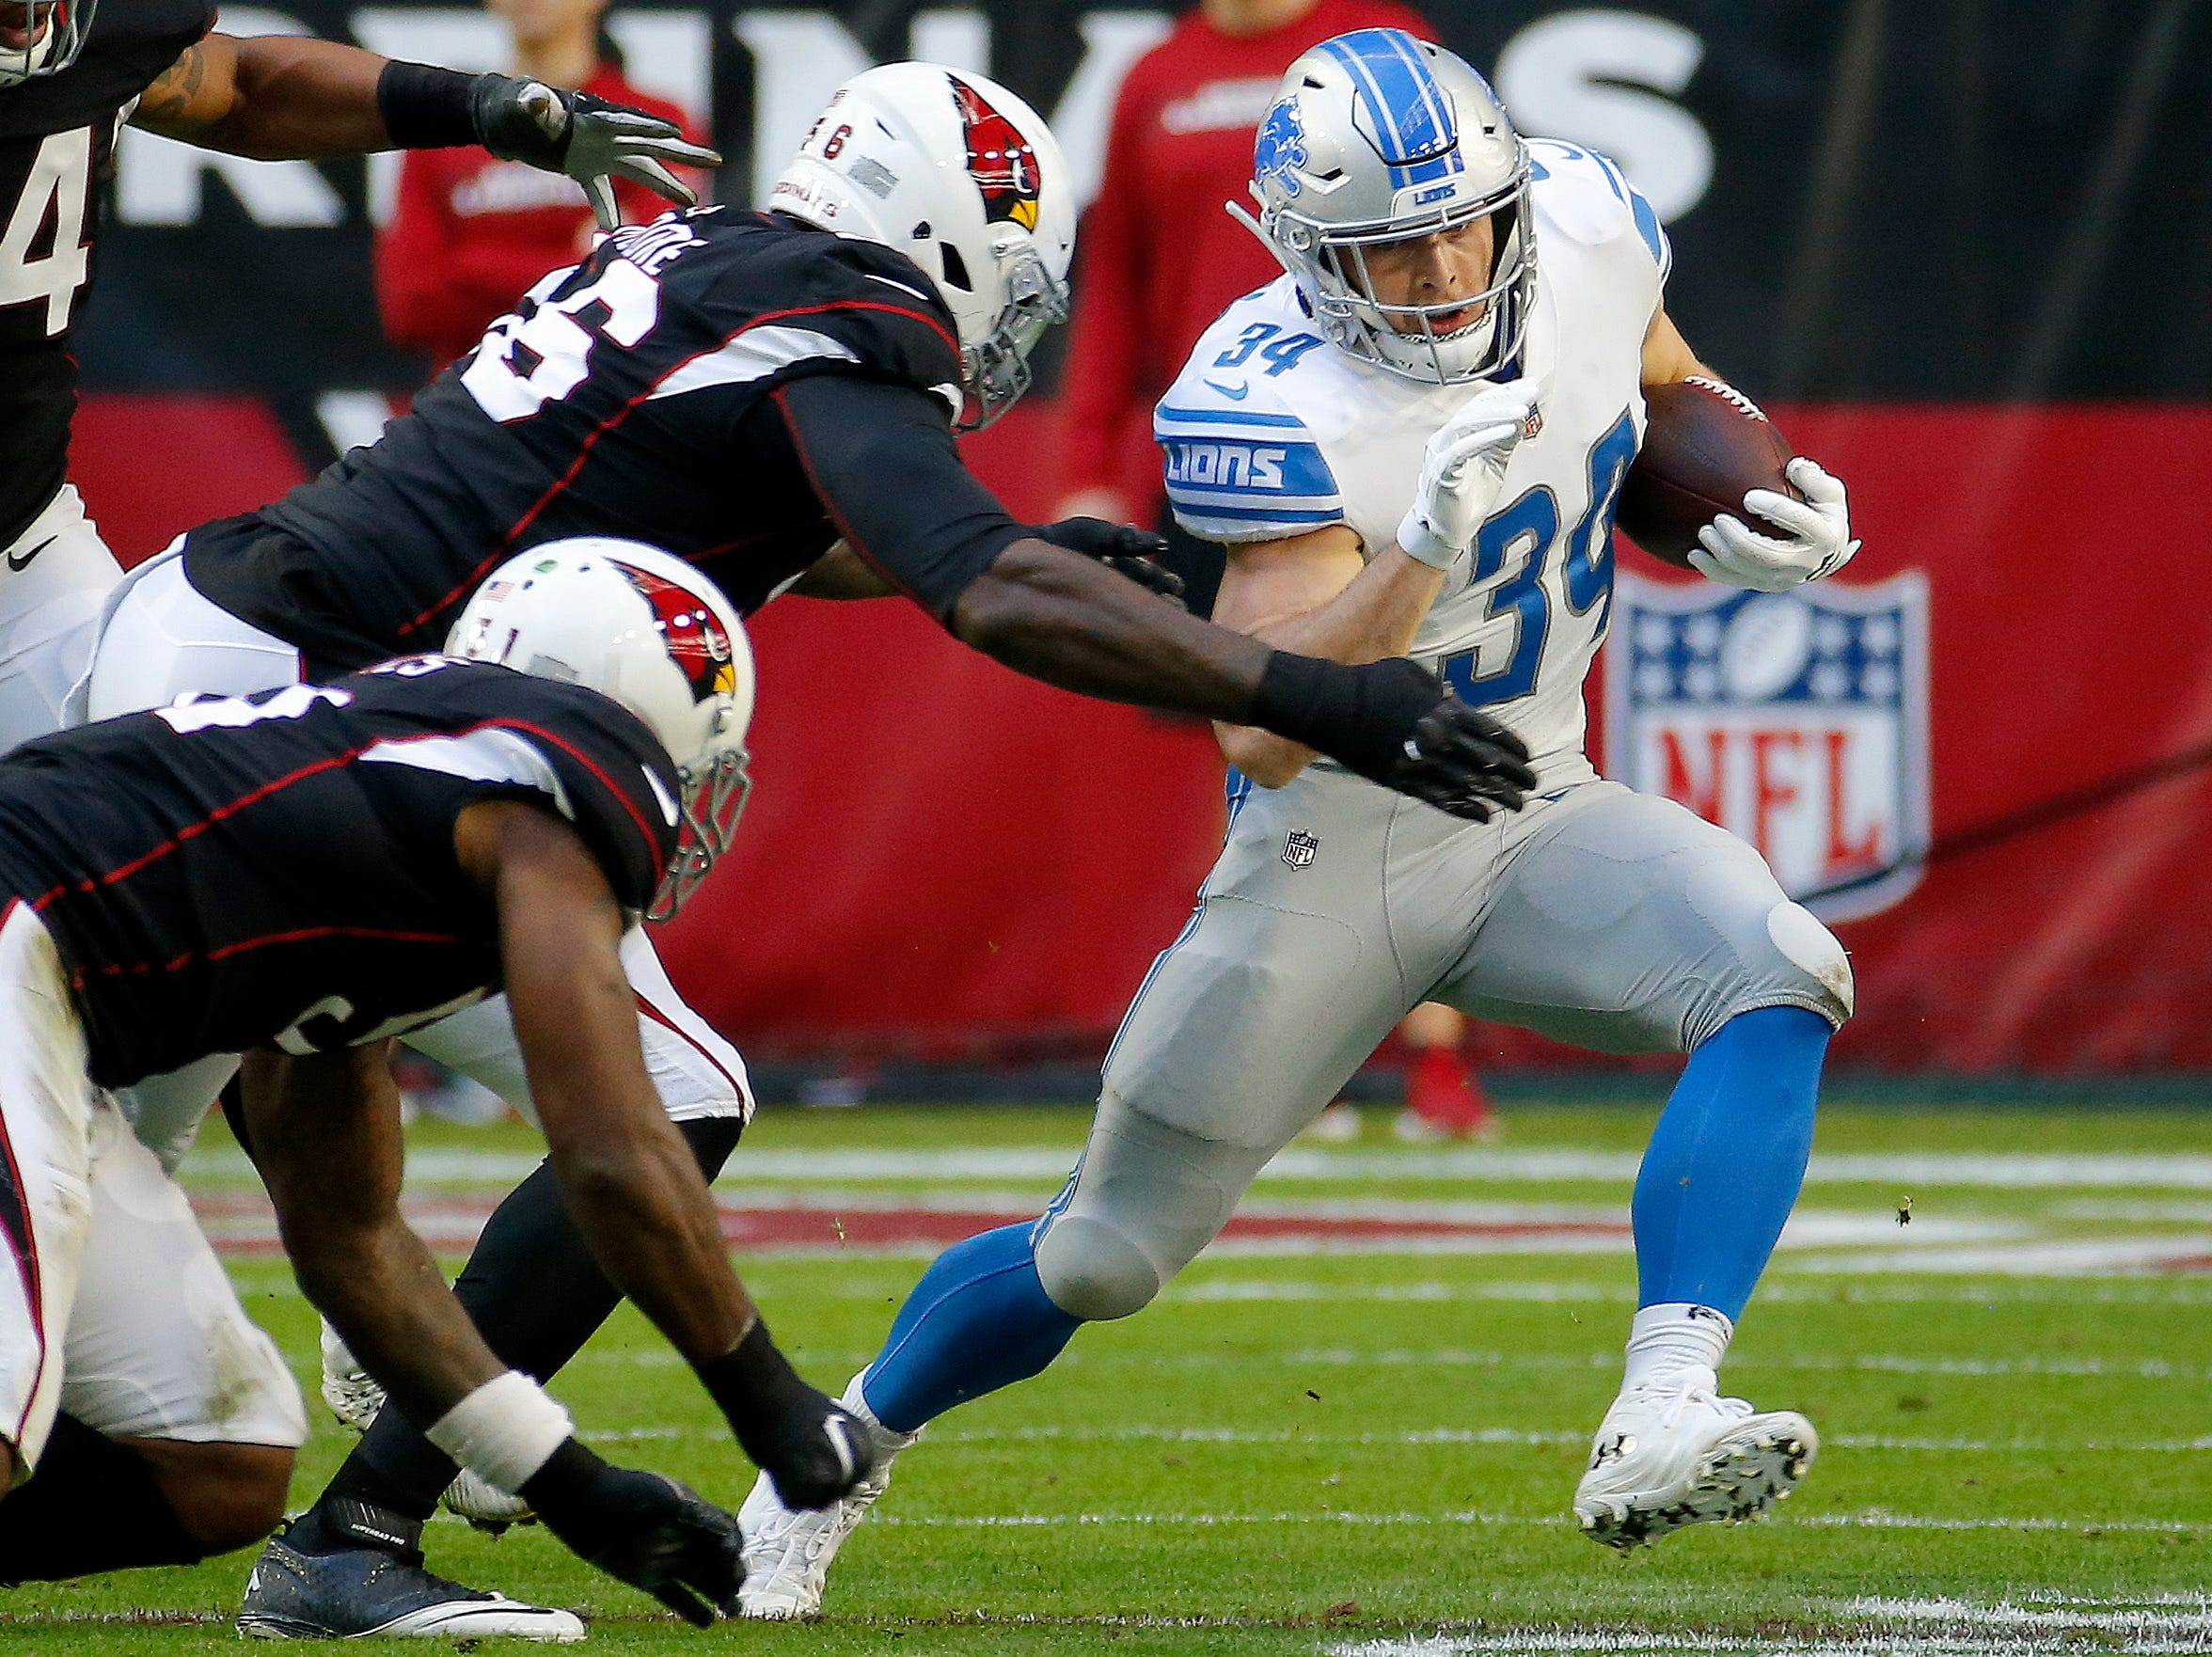 Detroit Lions running back Zach Zenner (34) tries to elude Arizona Cardinals defensive end Zach Moore (56) during the first half of NFL football game, Sunday, Dec. 9, 2018, in Glendale, Ariz. (AP Photo/Rick Scuteri)